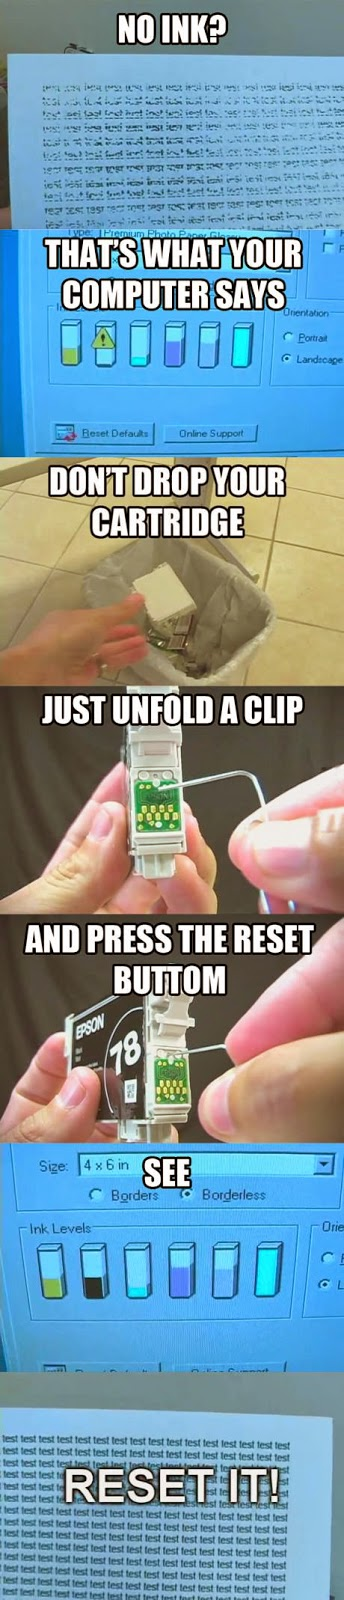 Reset your inkjet cartridge